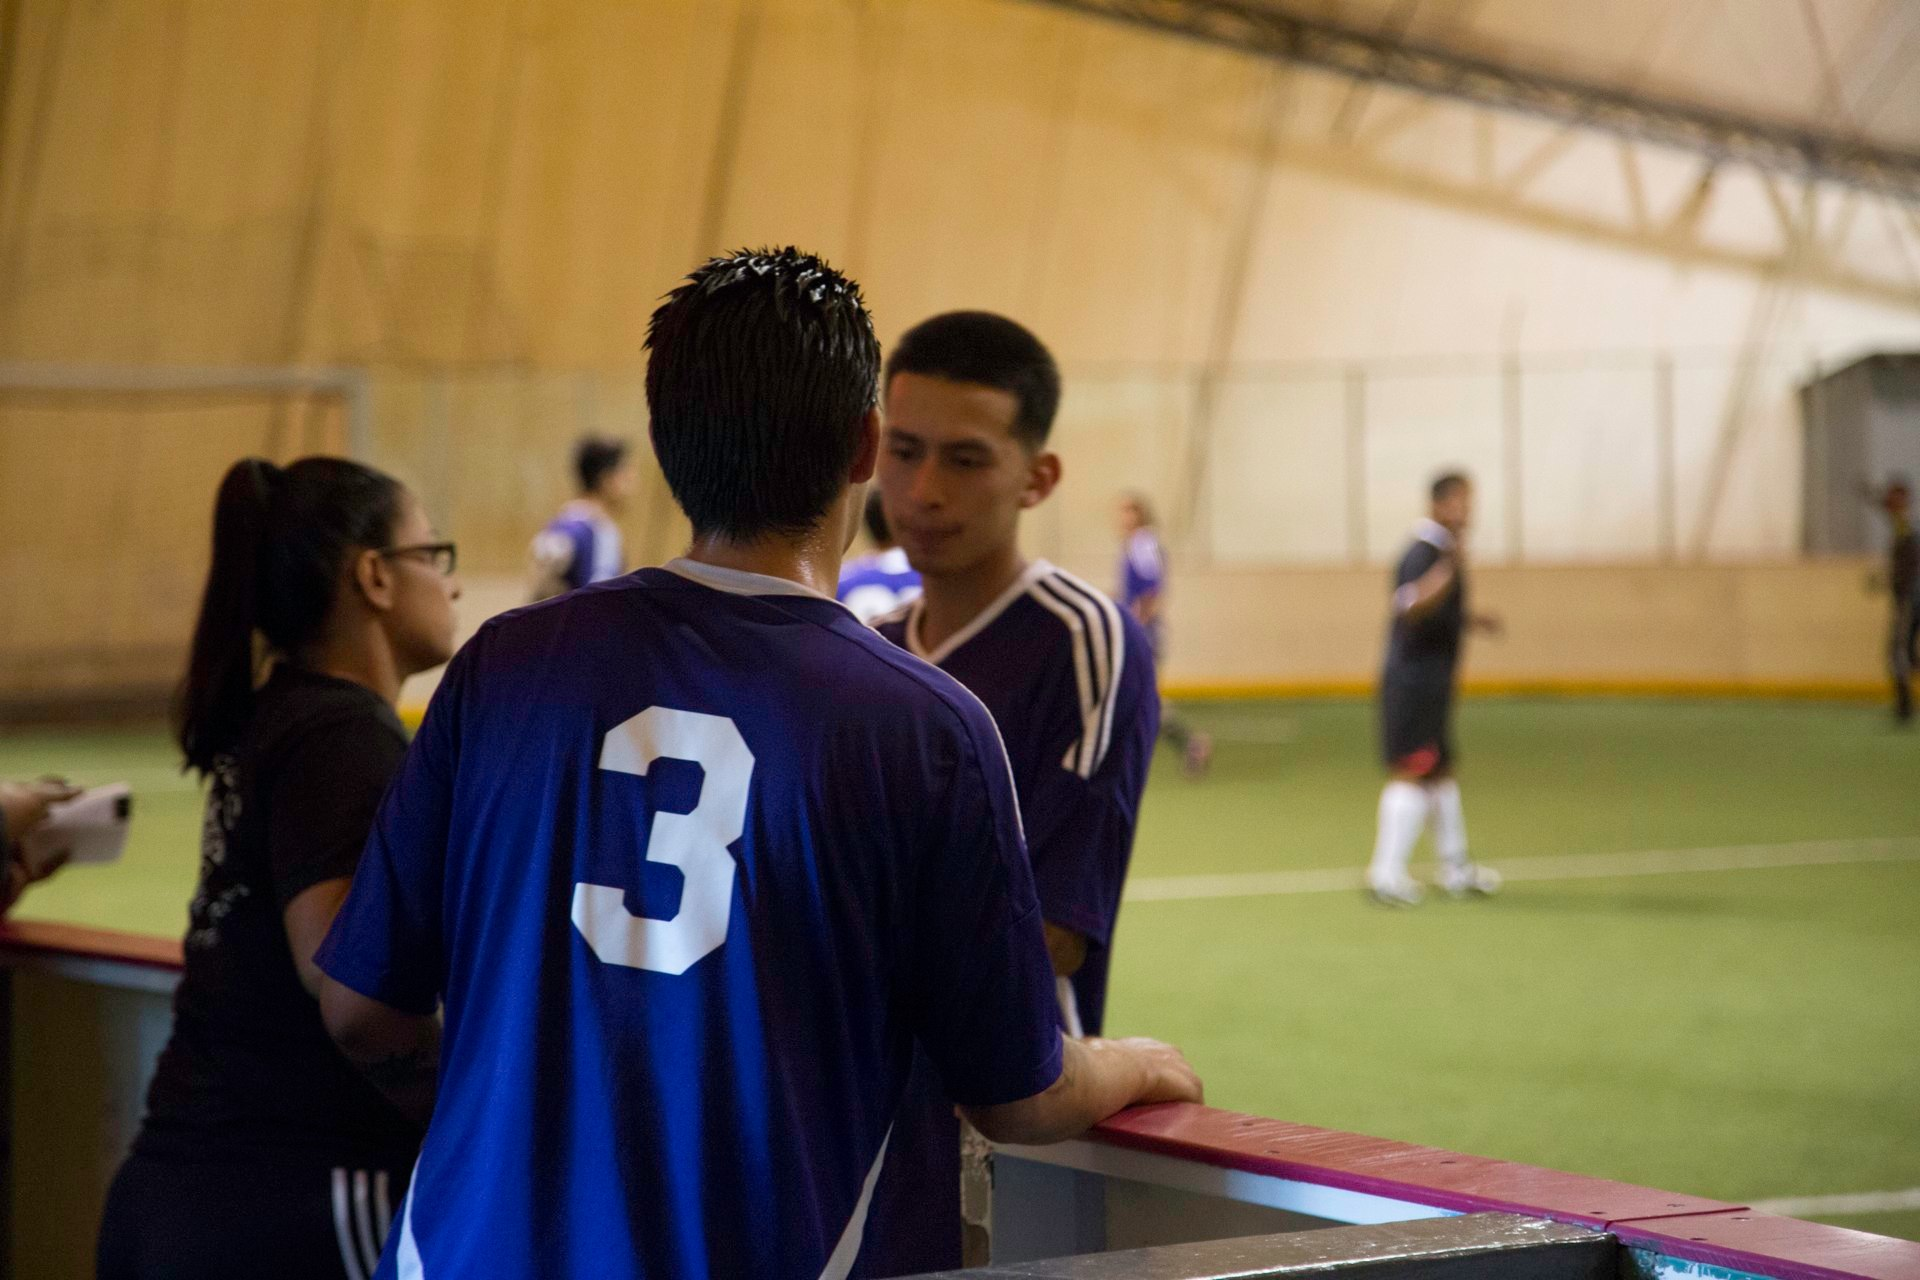 Gina coaching the Aztecas youth soccer players.